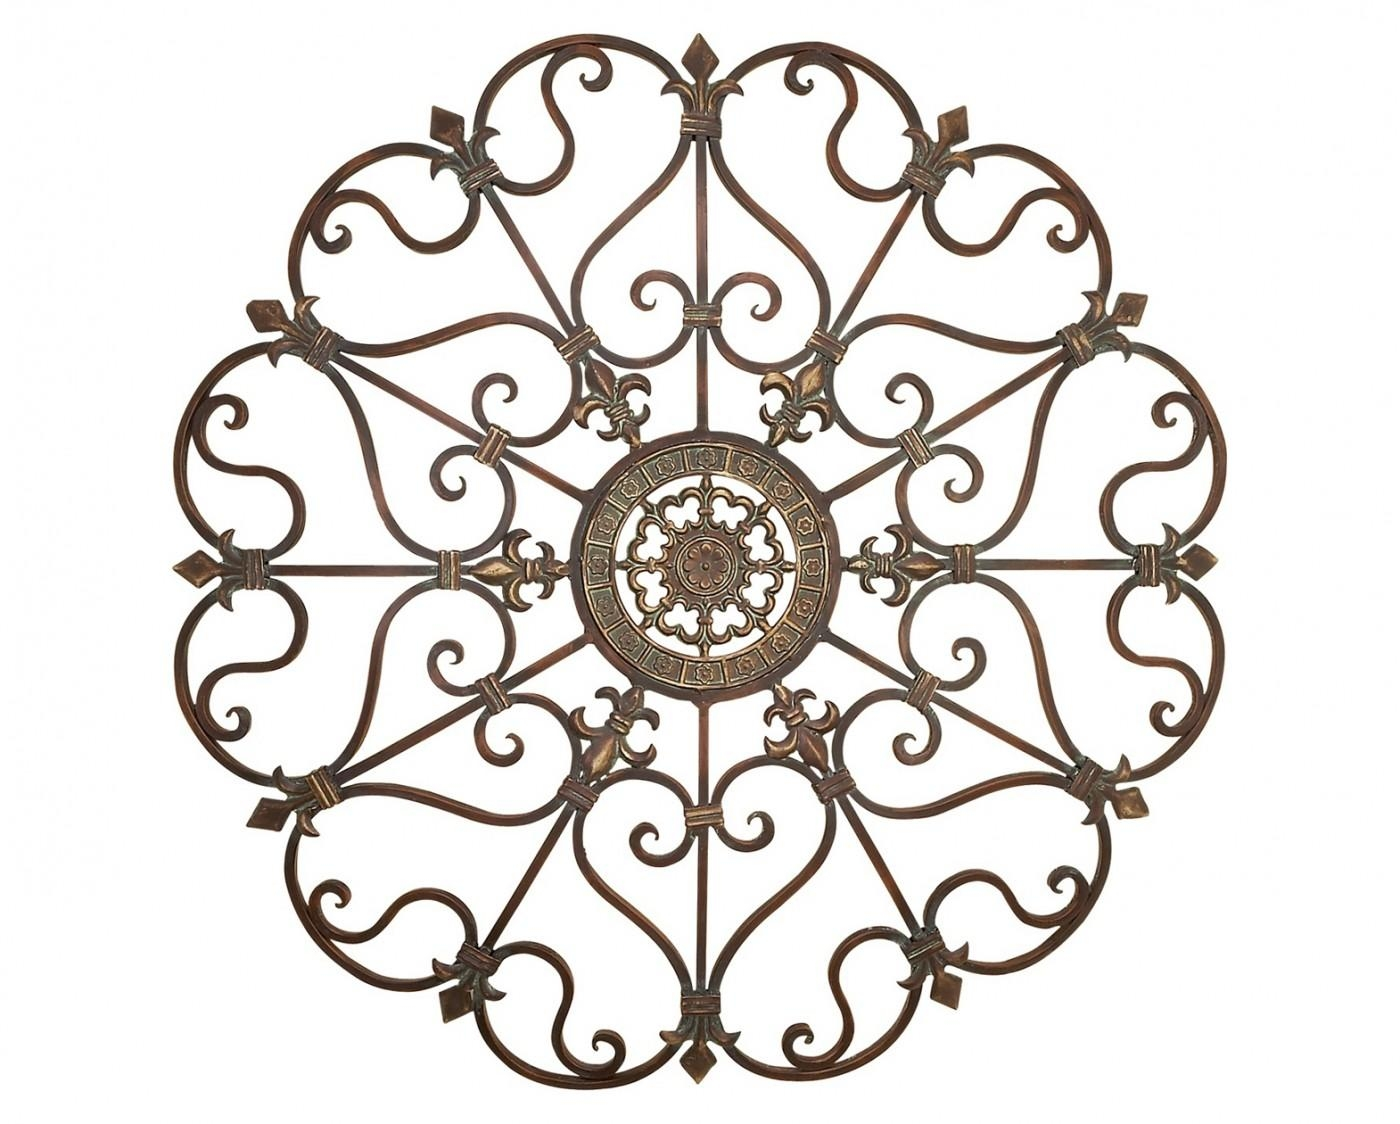 Fanciful Metal Wall Art Medallion Wrought Iron Home Decor Accent With Regard To Iron Scroll Wall Art (View 20 of 20)